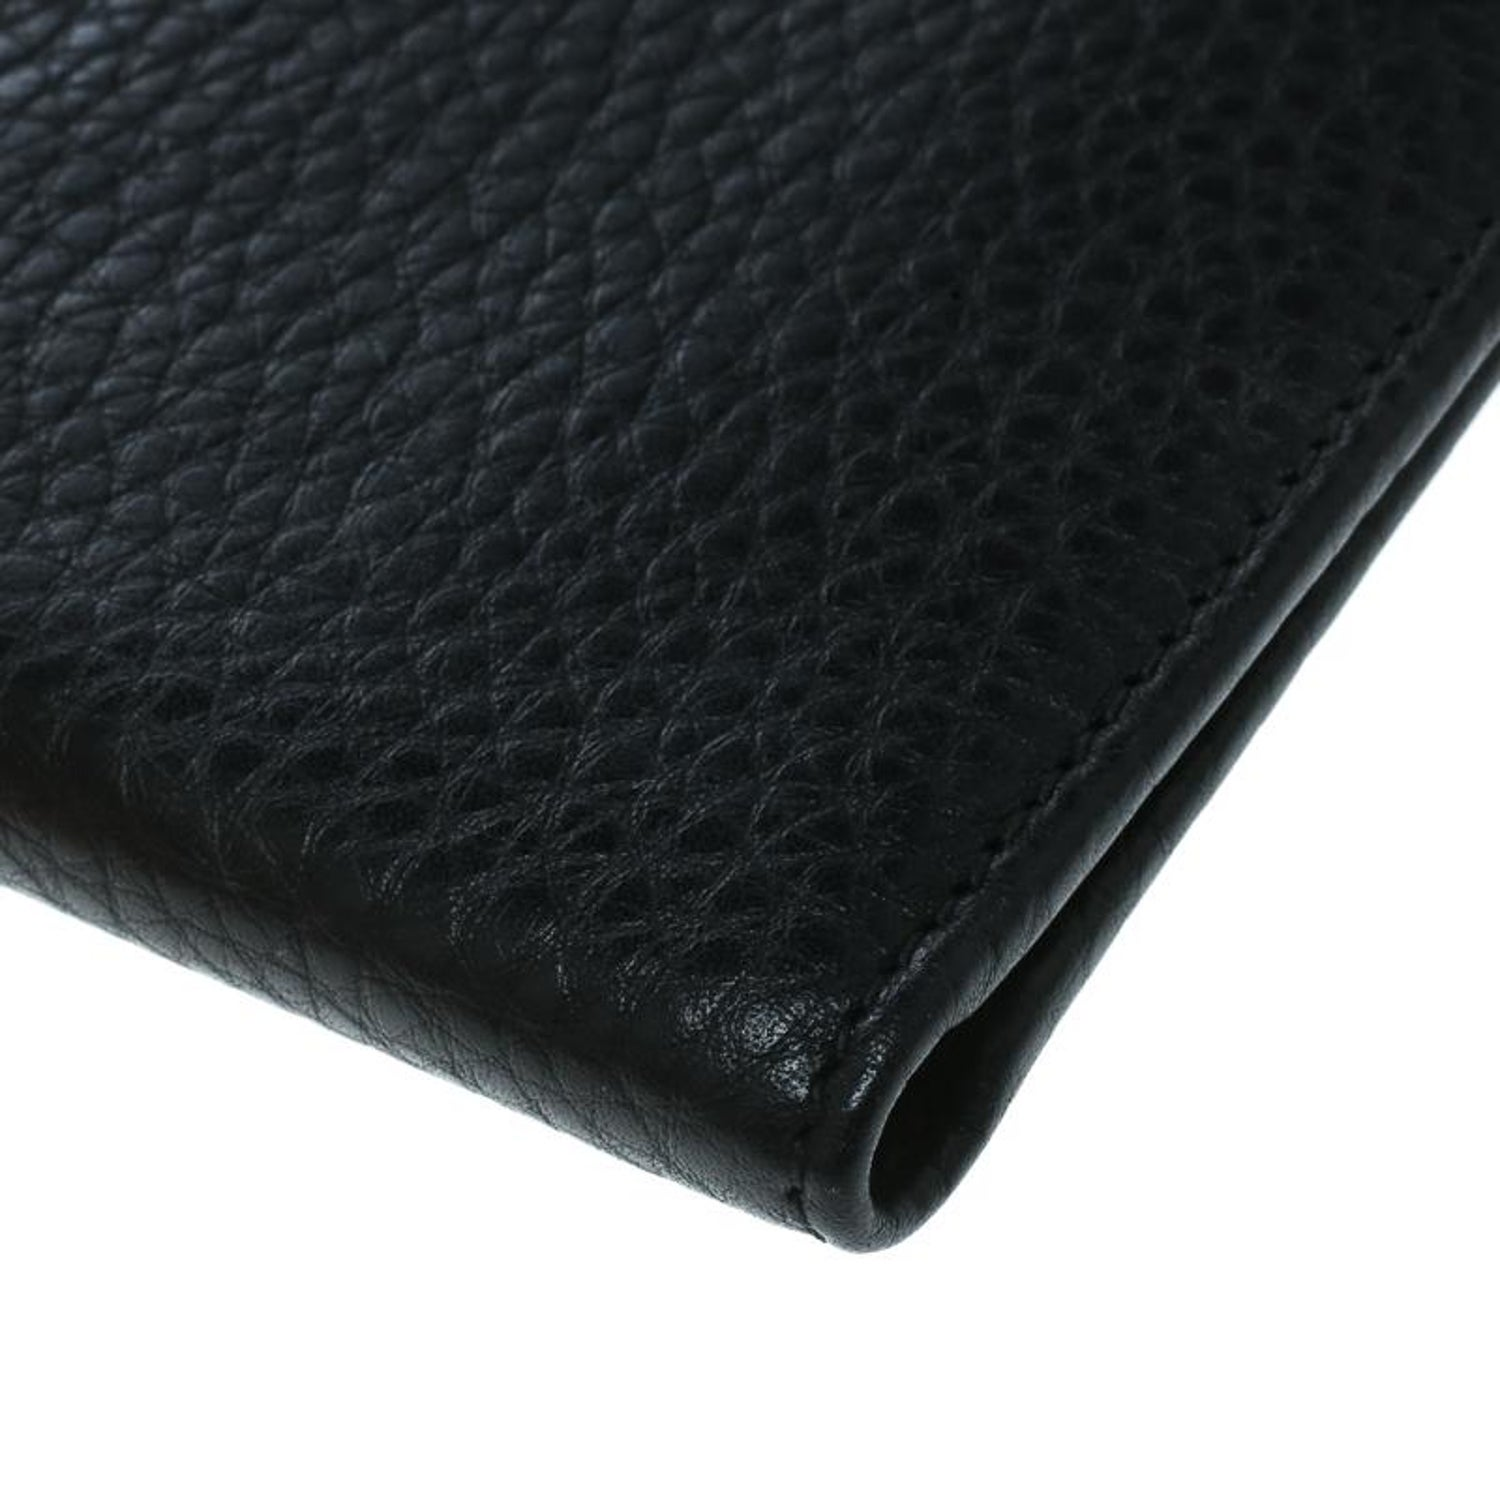 076a2049dfbb Gucci Black Leather Ace Web Interlocking GG Bifold Wallet For Sale at  1stdibs